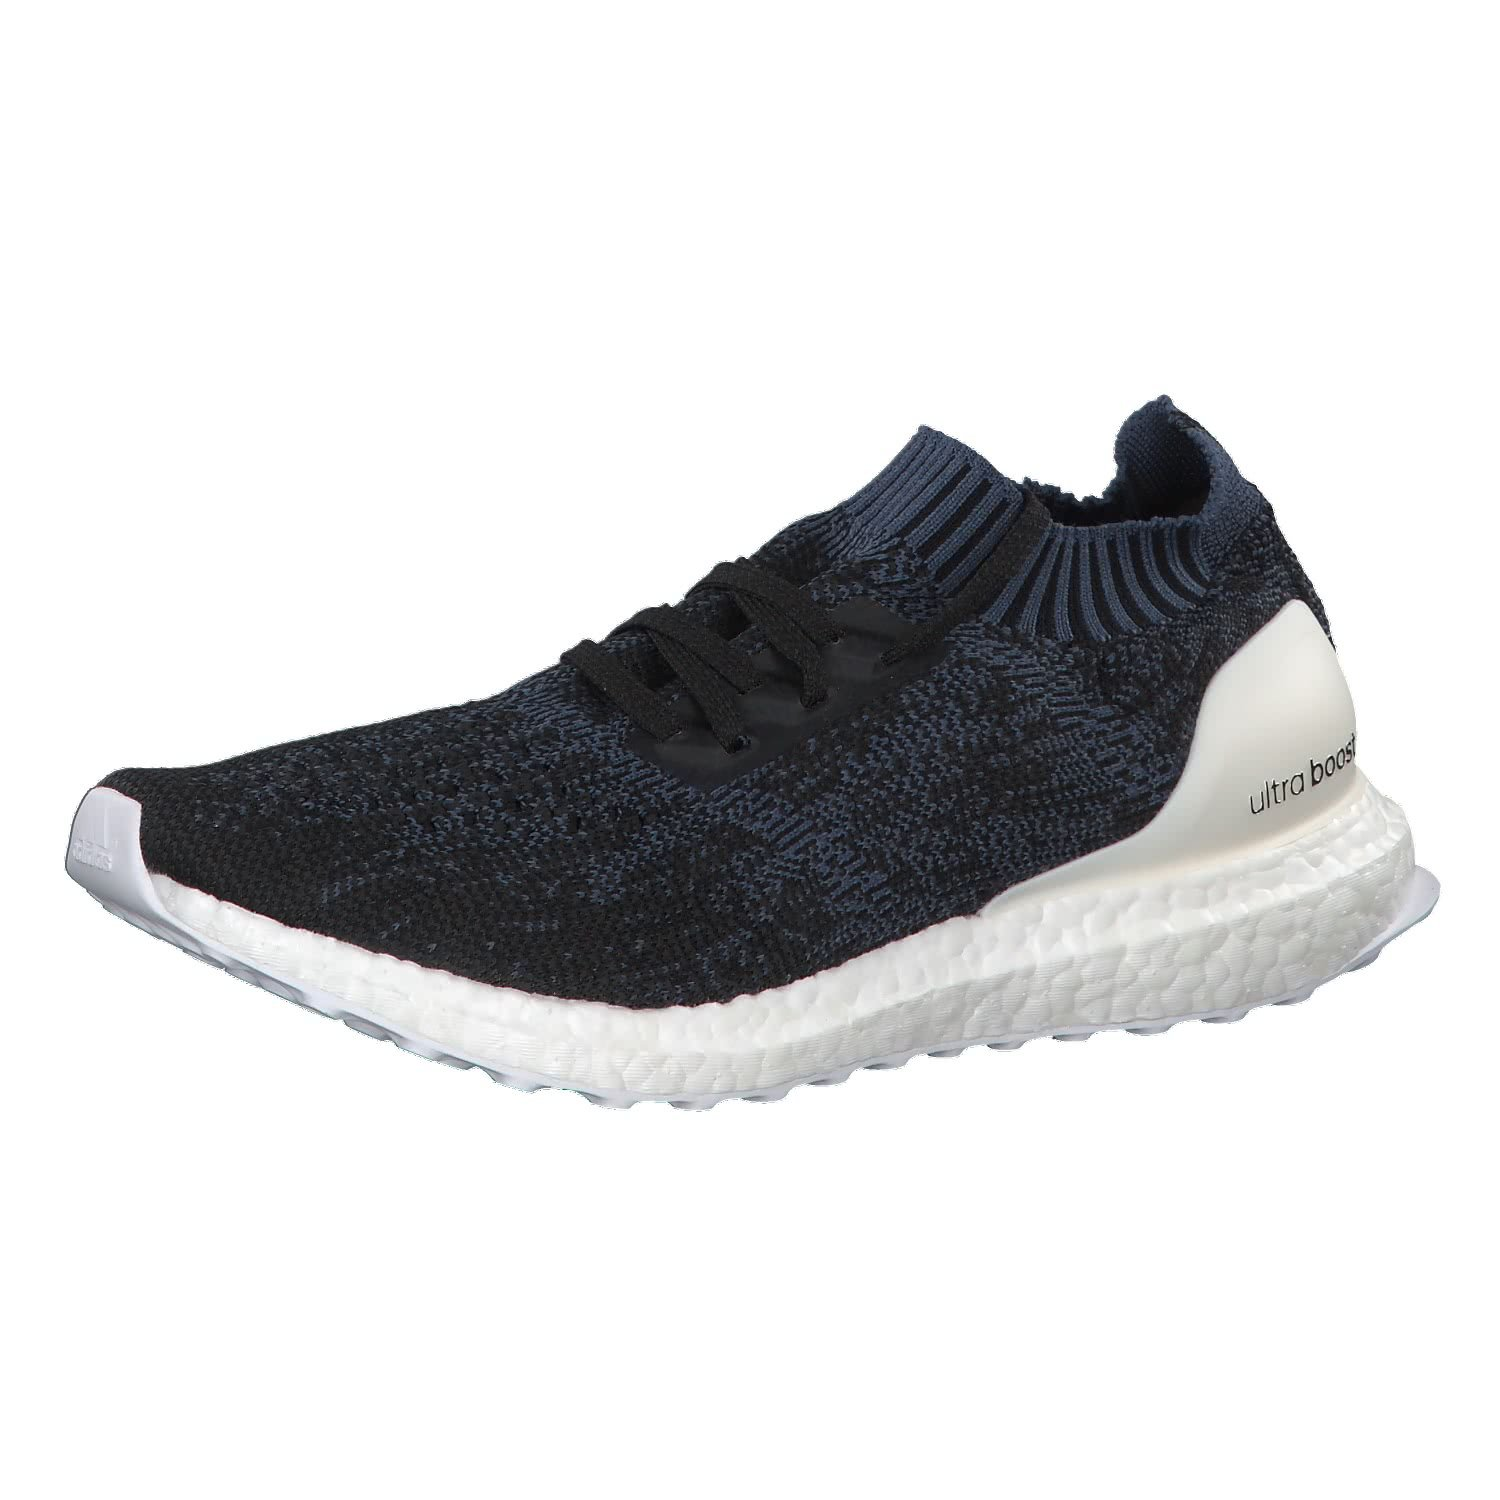 finest selection f289a c06d2 adidas Men s Ultraboost Uncaged Fitness Shoes - TheSportsShop